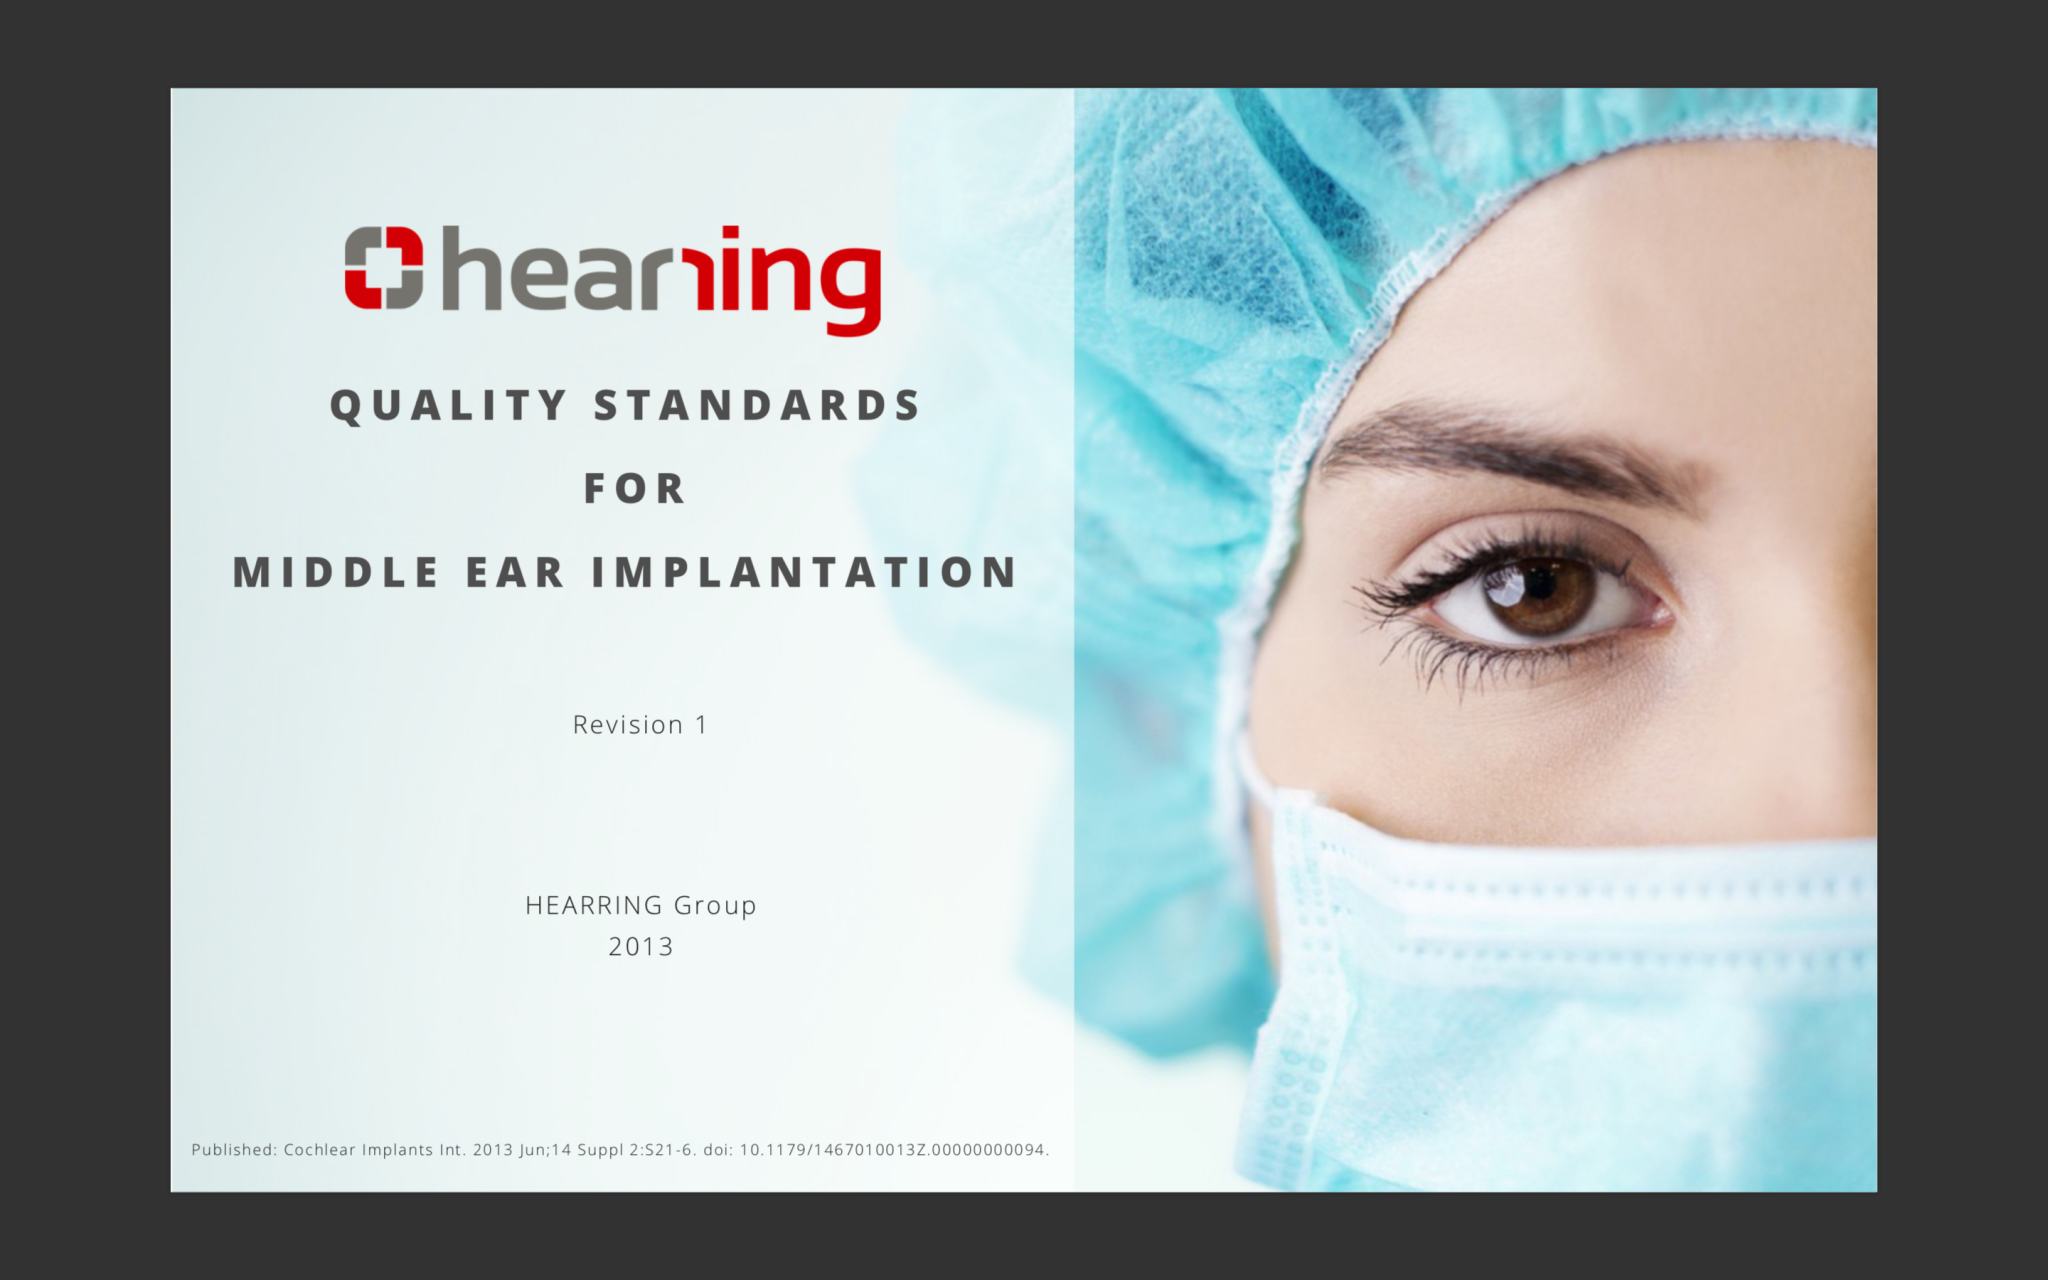 Middle Ear Implantation Quality Standards Hearring